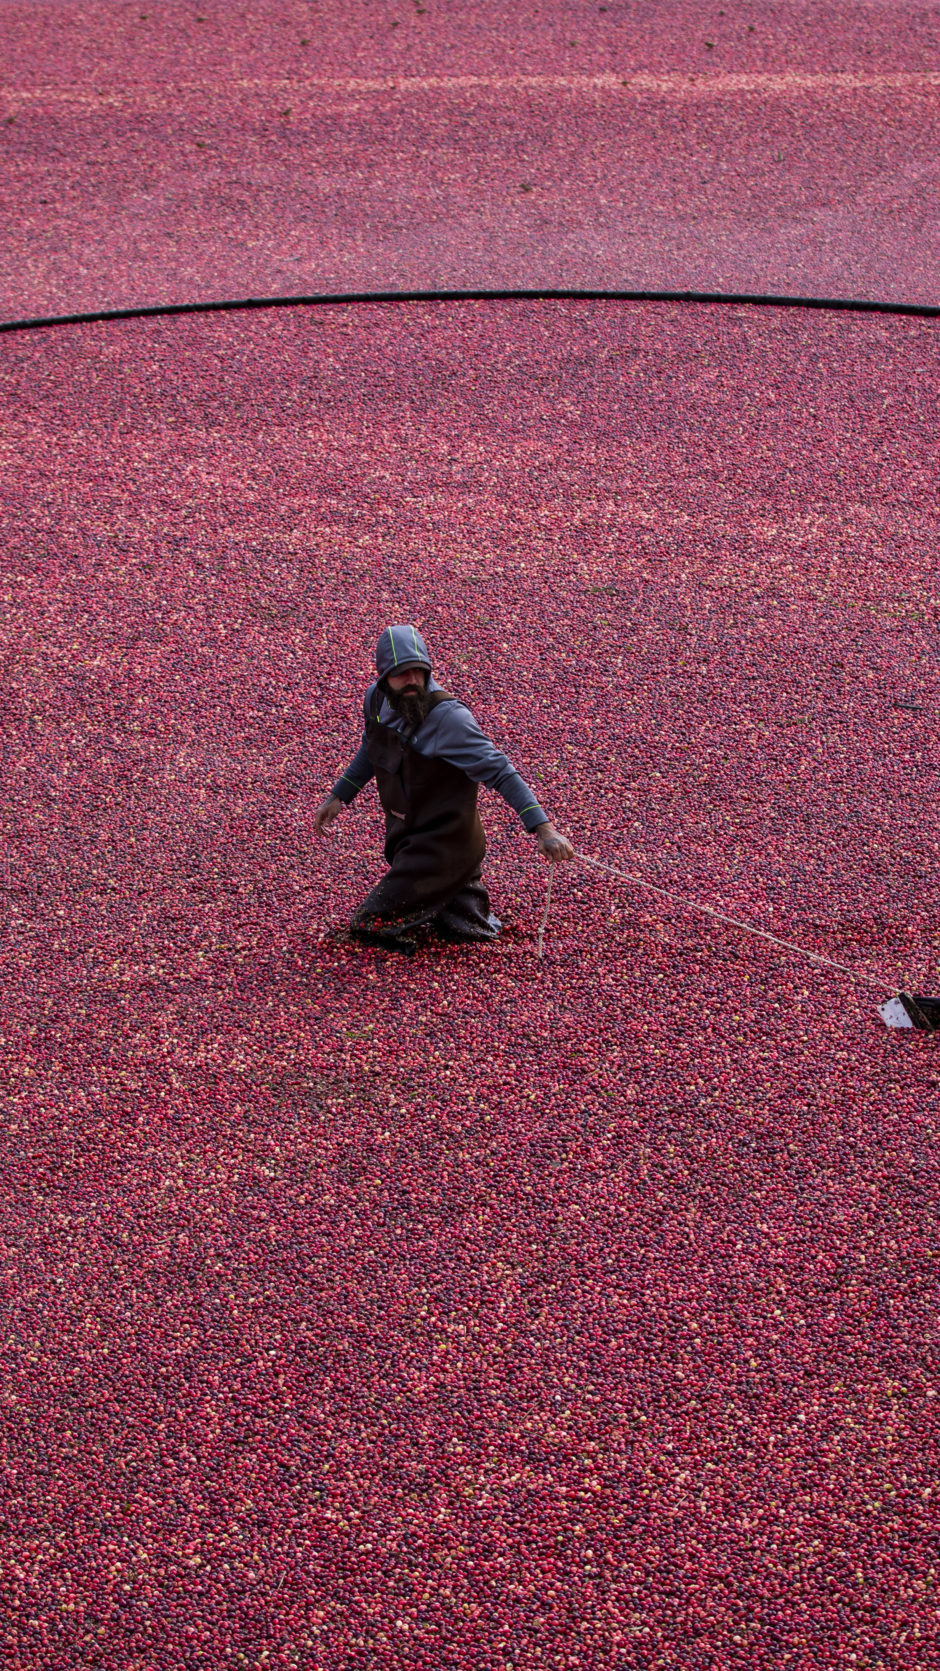 For the love of cranberries